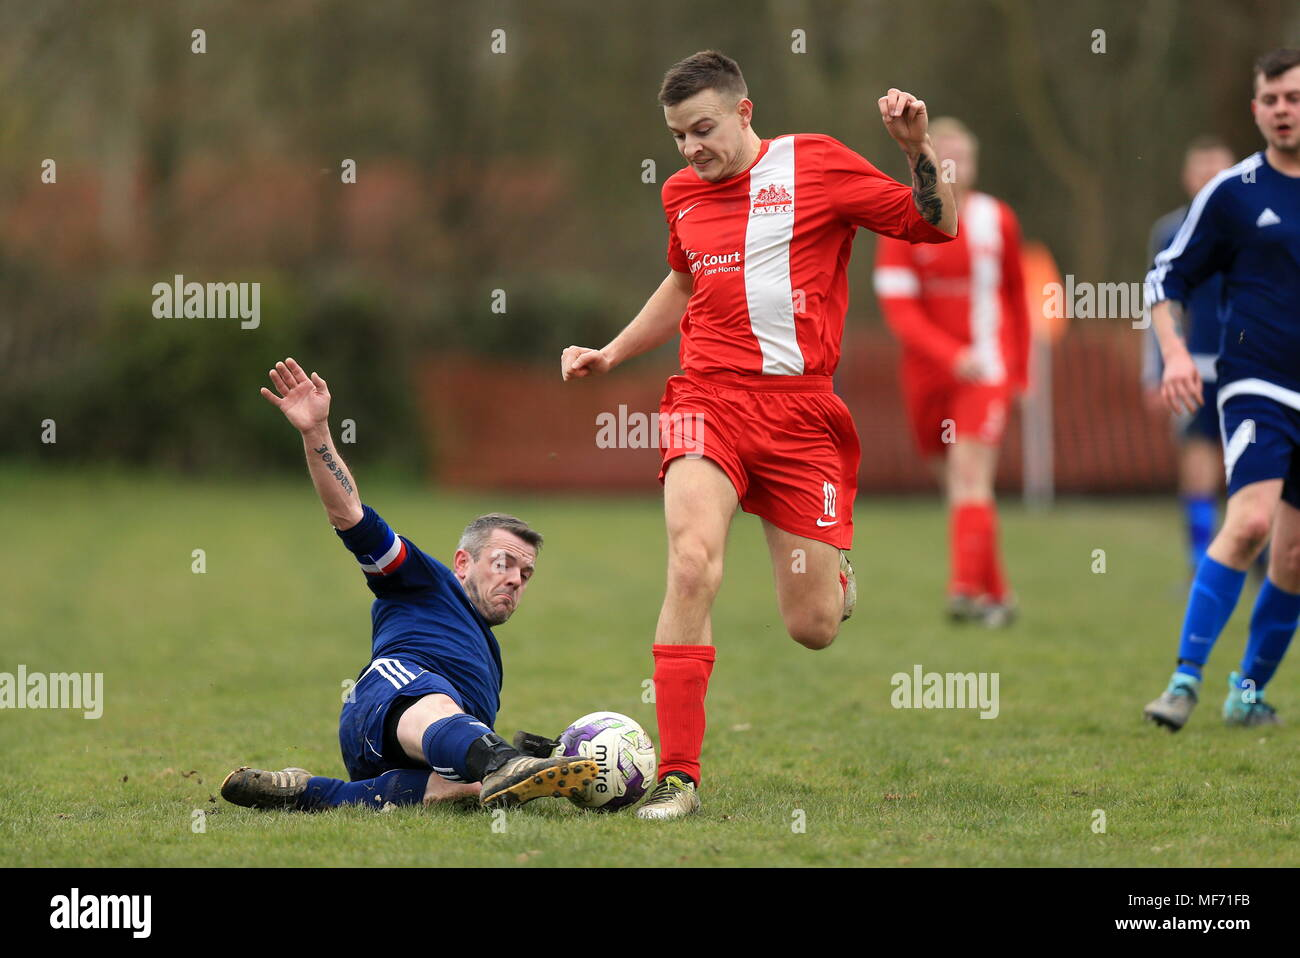 A Blacksmith Arms FC player challenges for the ball on a sunday morning game against Charlwood Village Reserves in the Redhill and District League - Stock Image